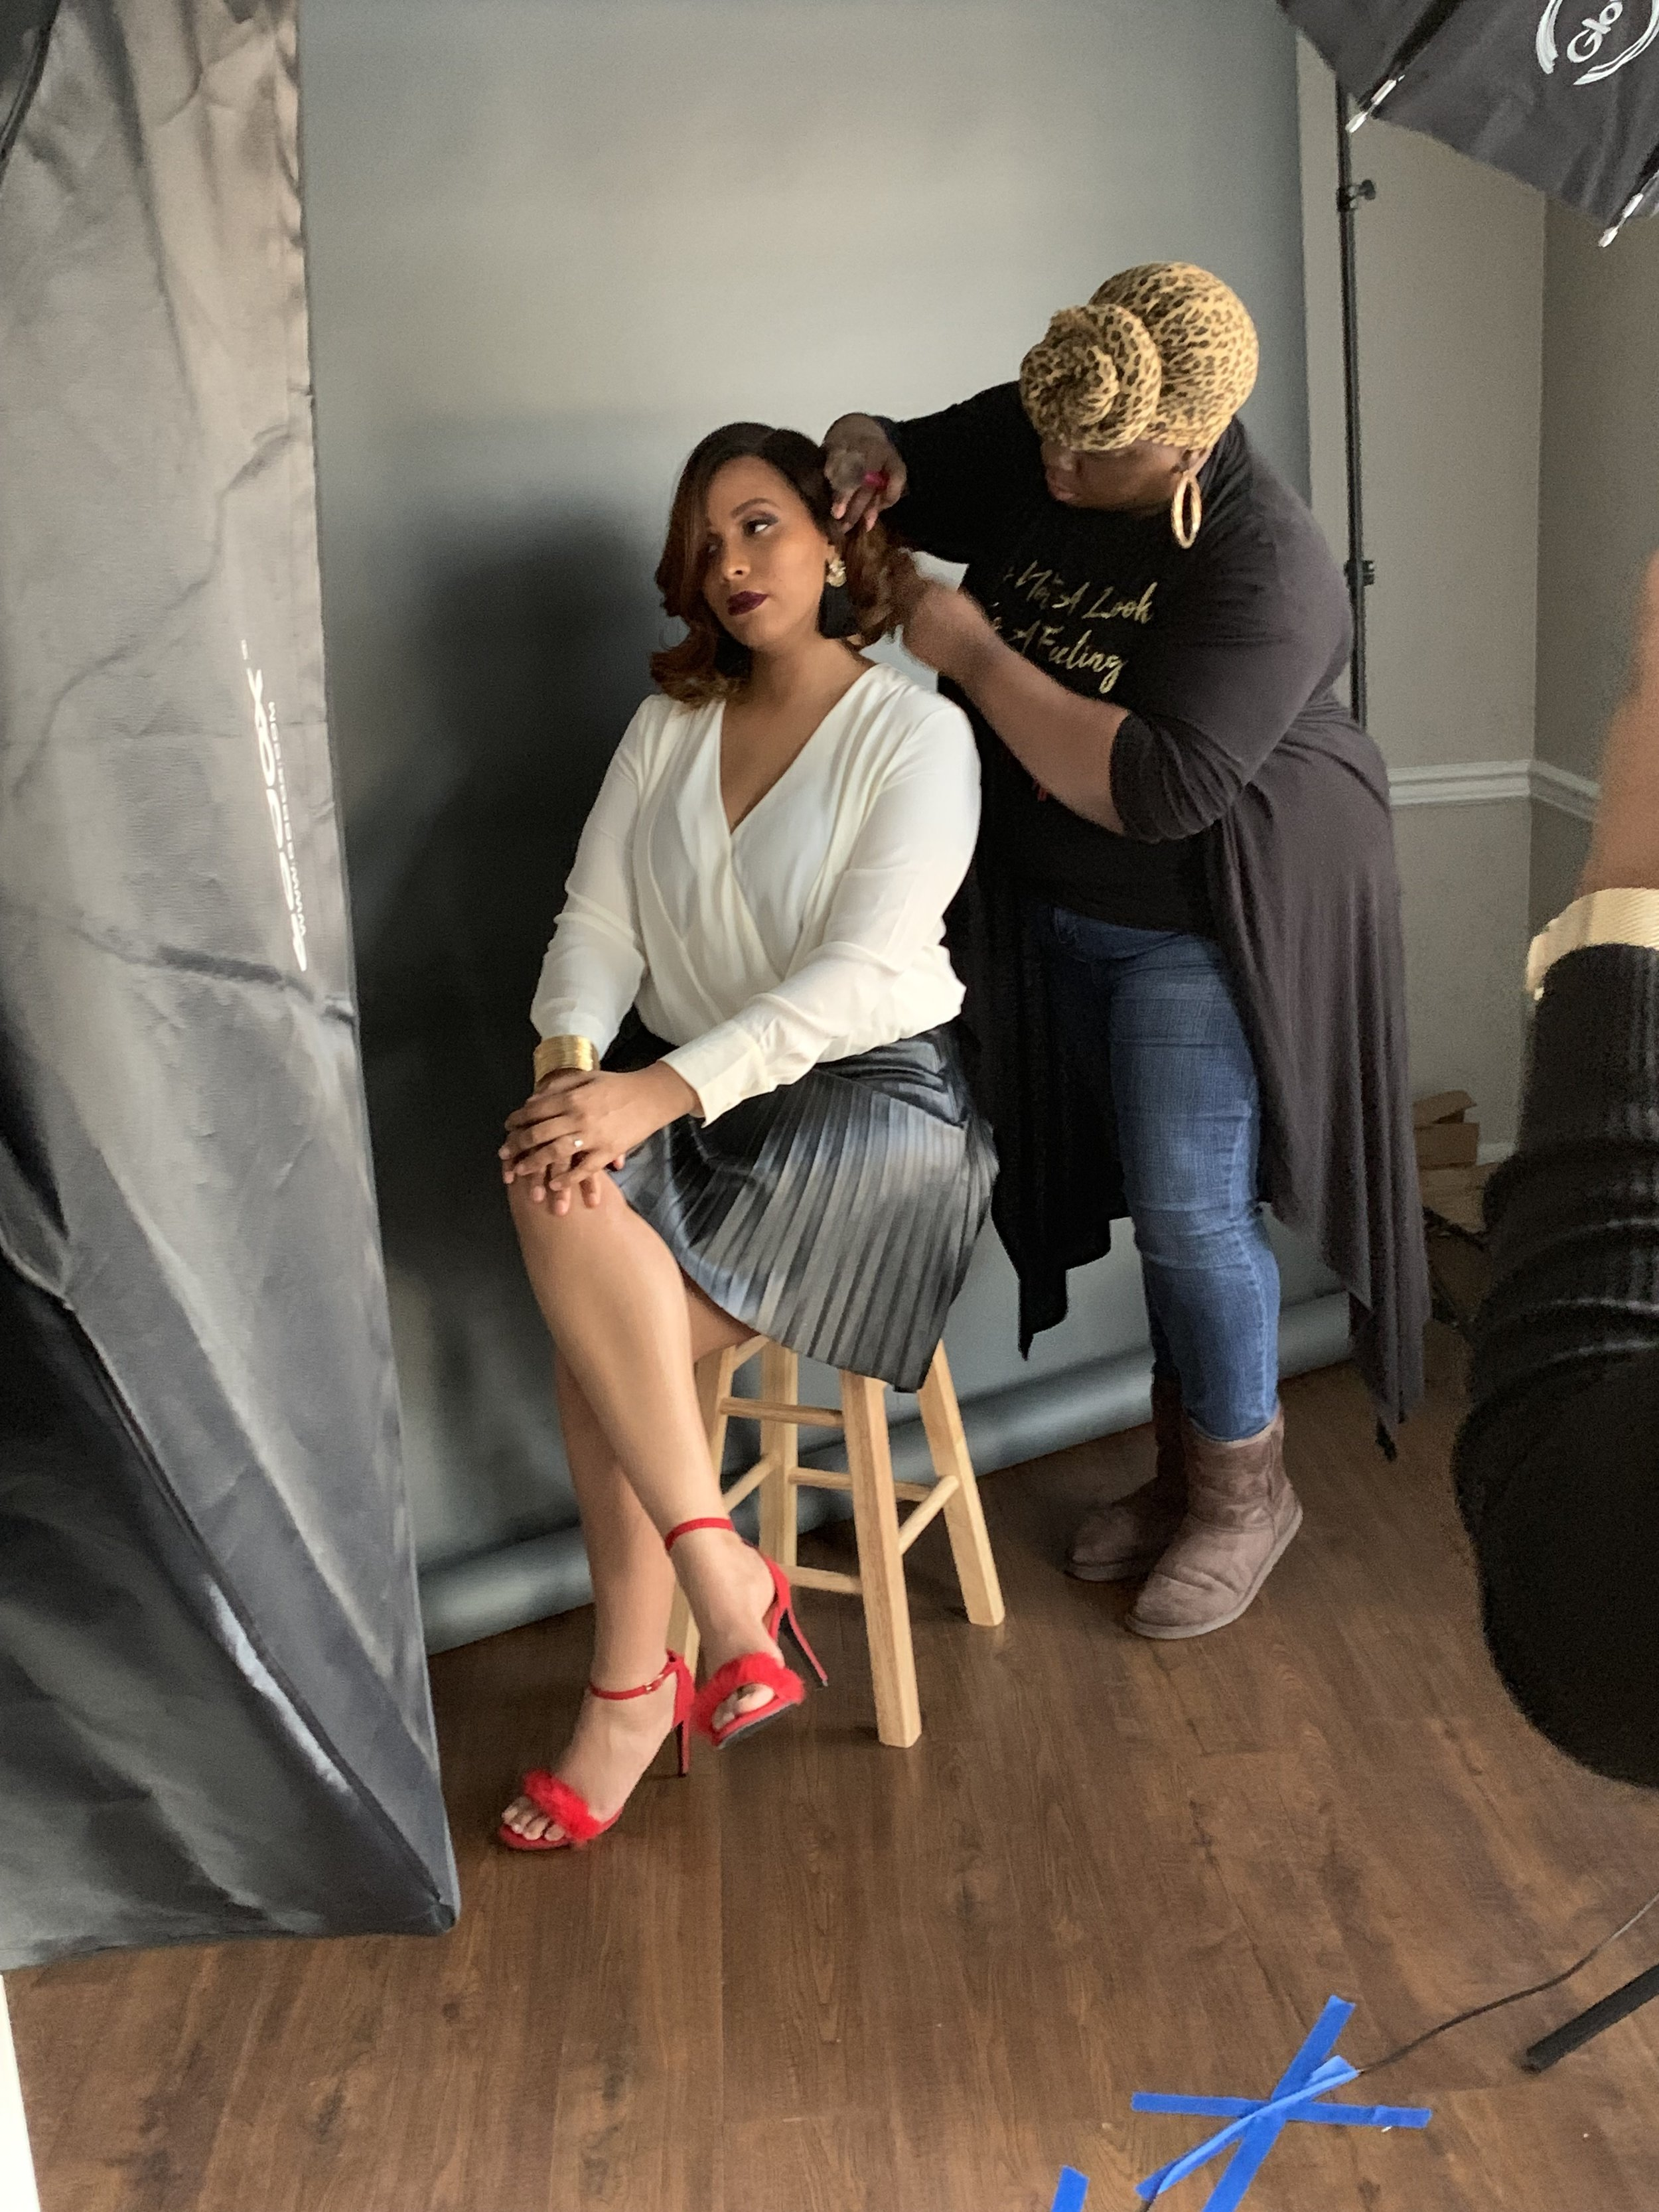 A Top 10 Service - Whether you're in need a new look, makeup services for your big day or help organizing your closet and building a star studded wardrobe I am your one stop shop.